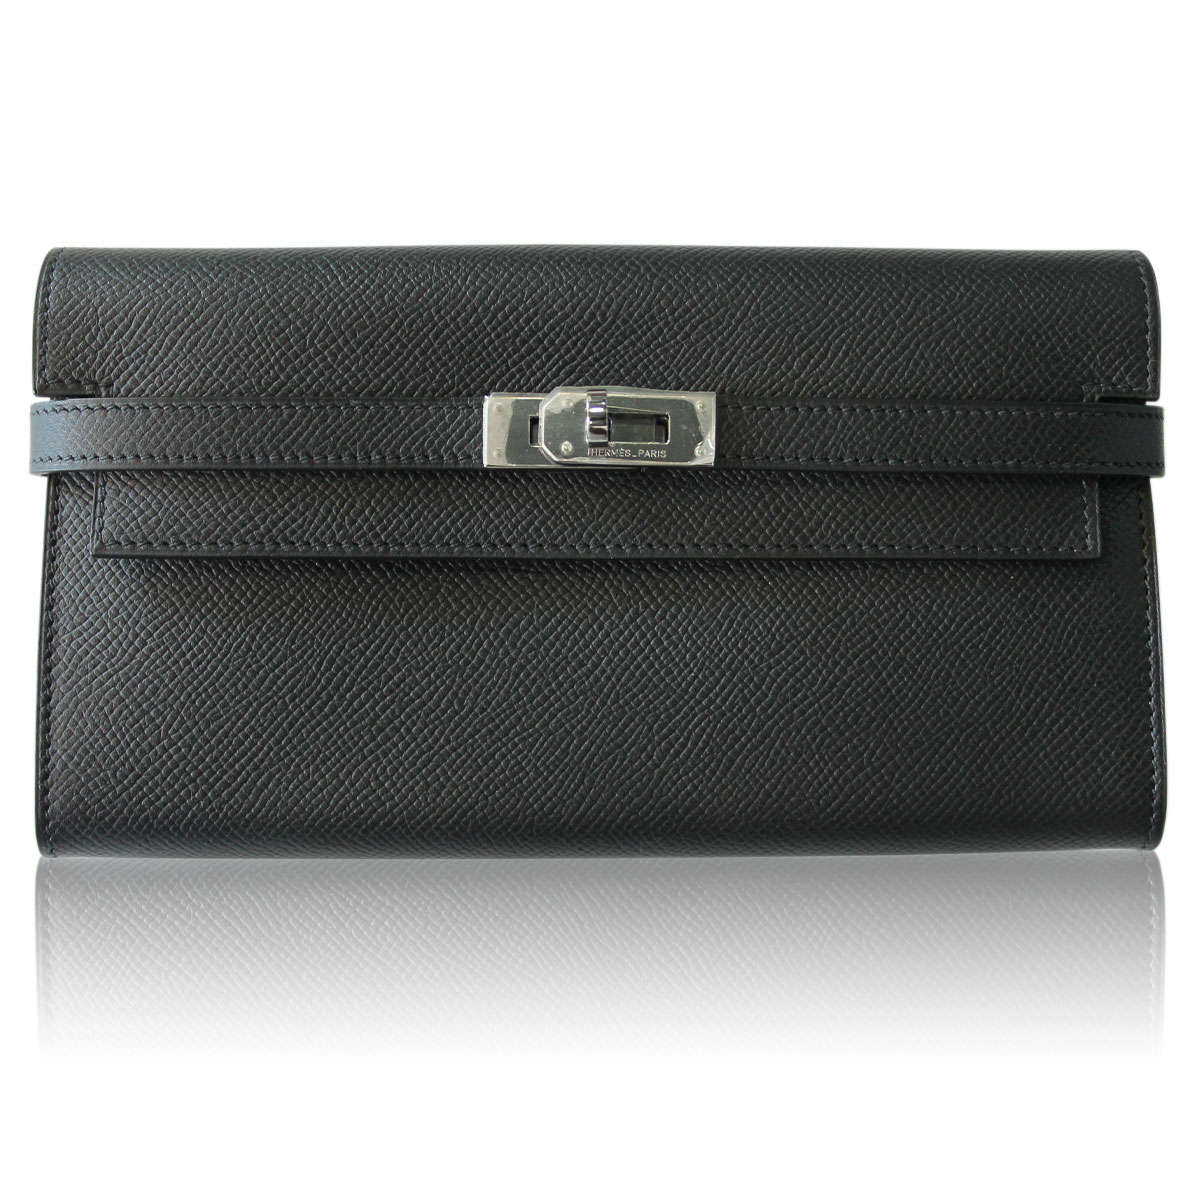 Hermes Kelly Wallet on Sale Boca Raton